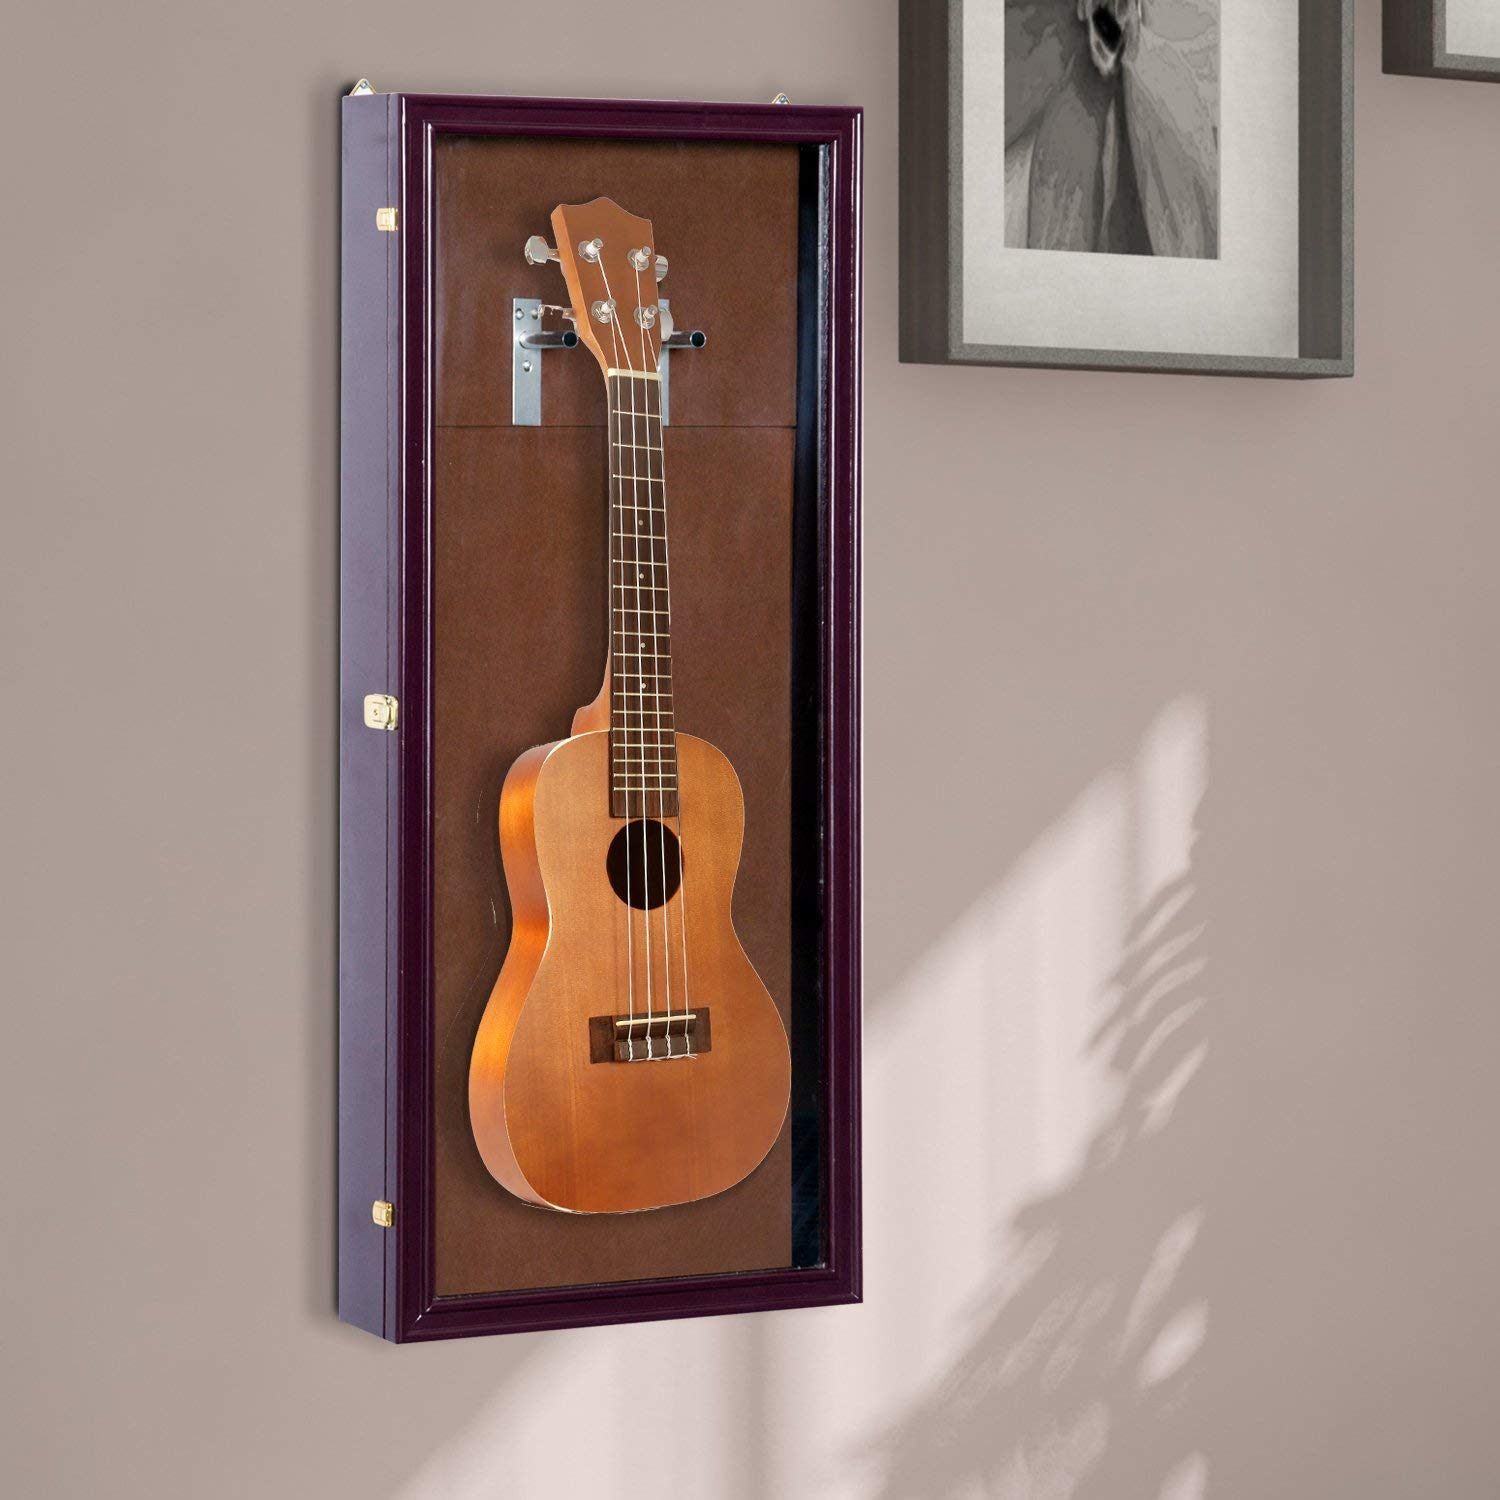 Festnight Guitar Shadow Box Wall Mounted Lockable Display Security Case Brown